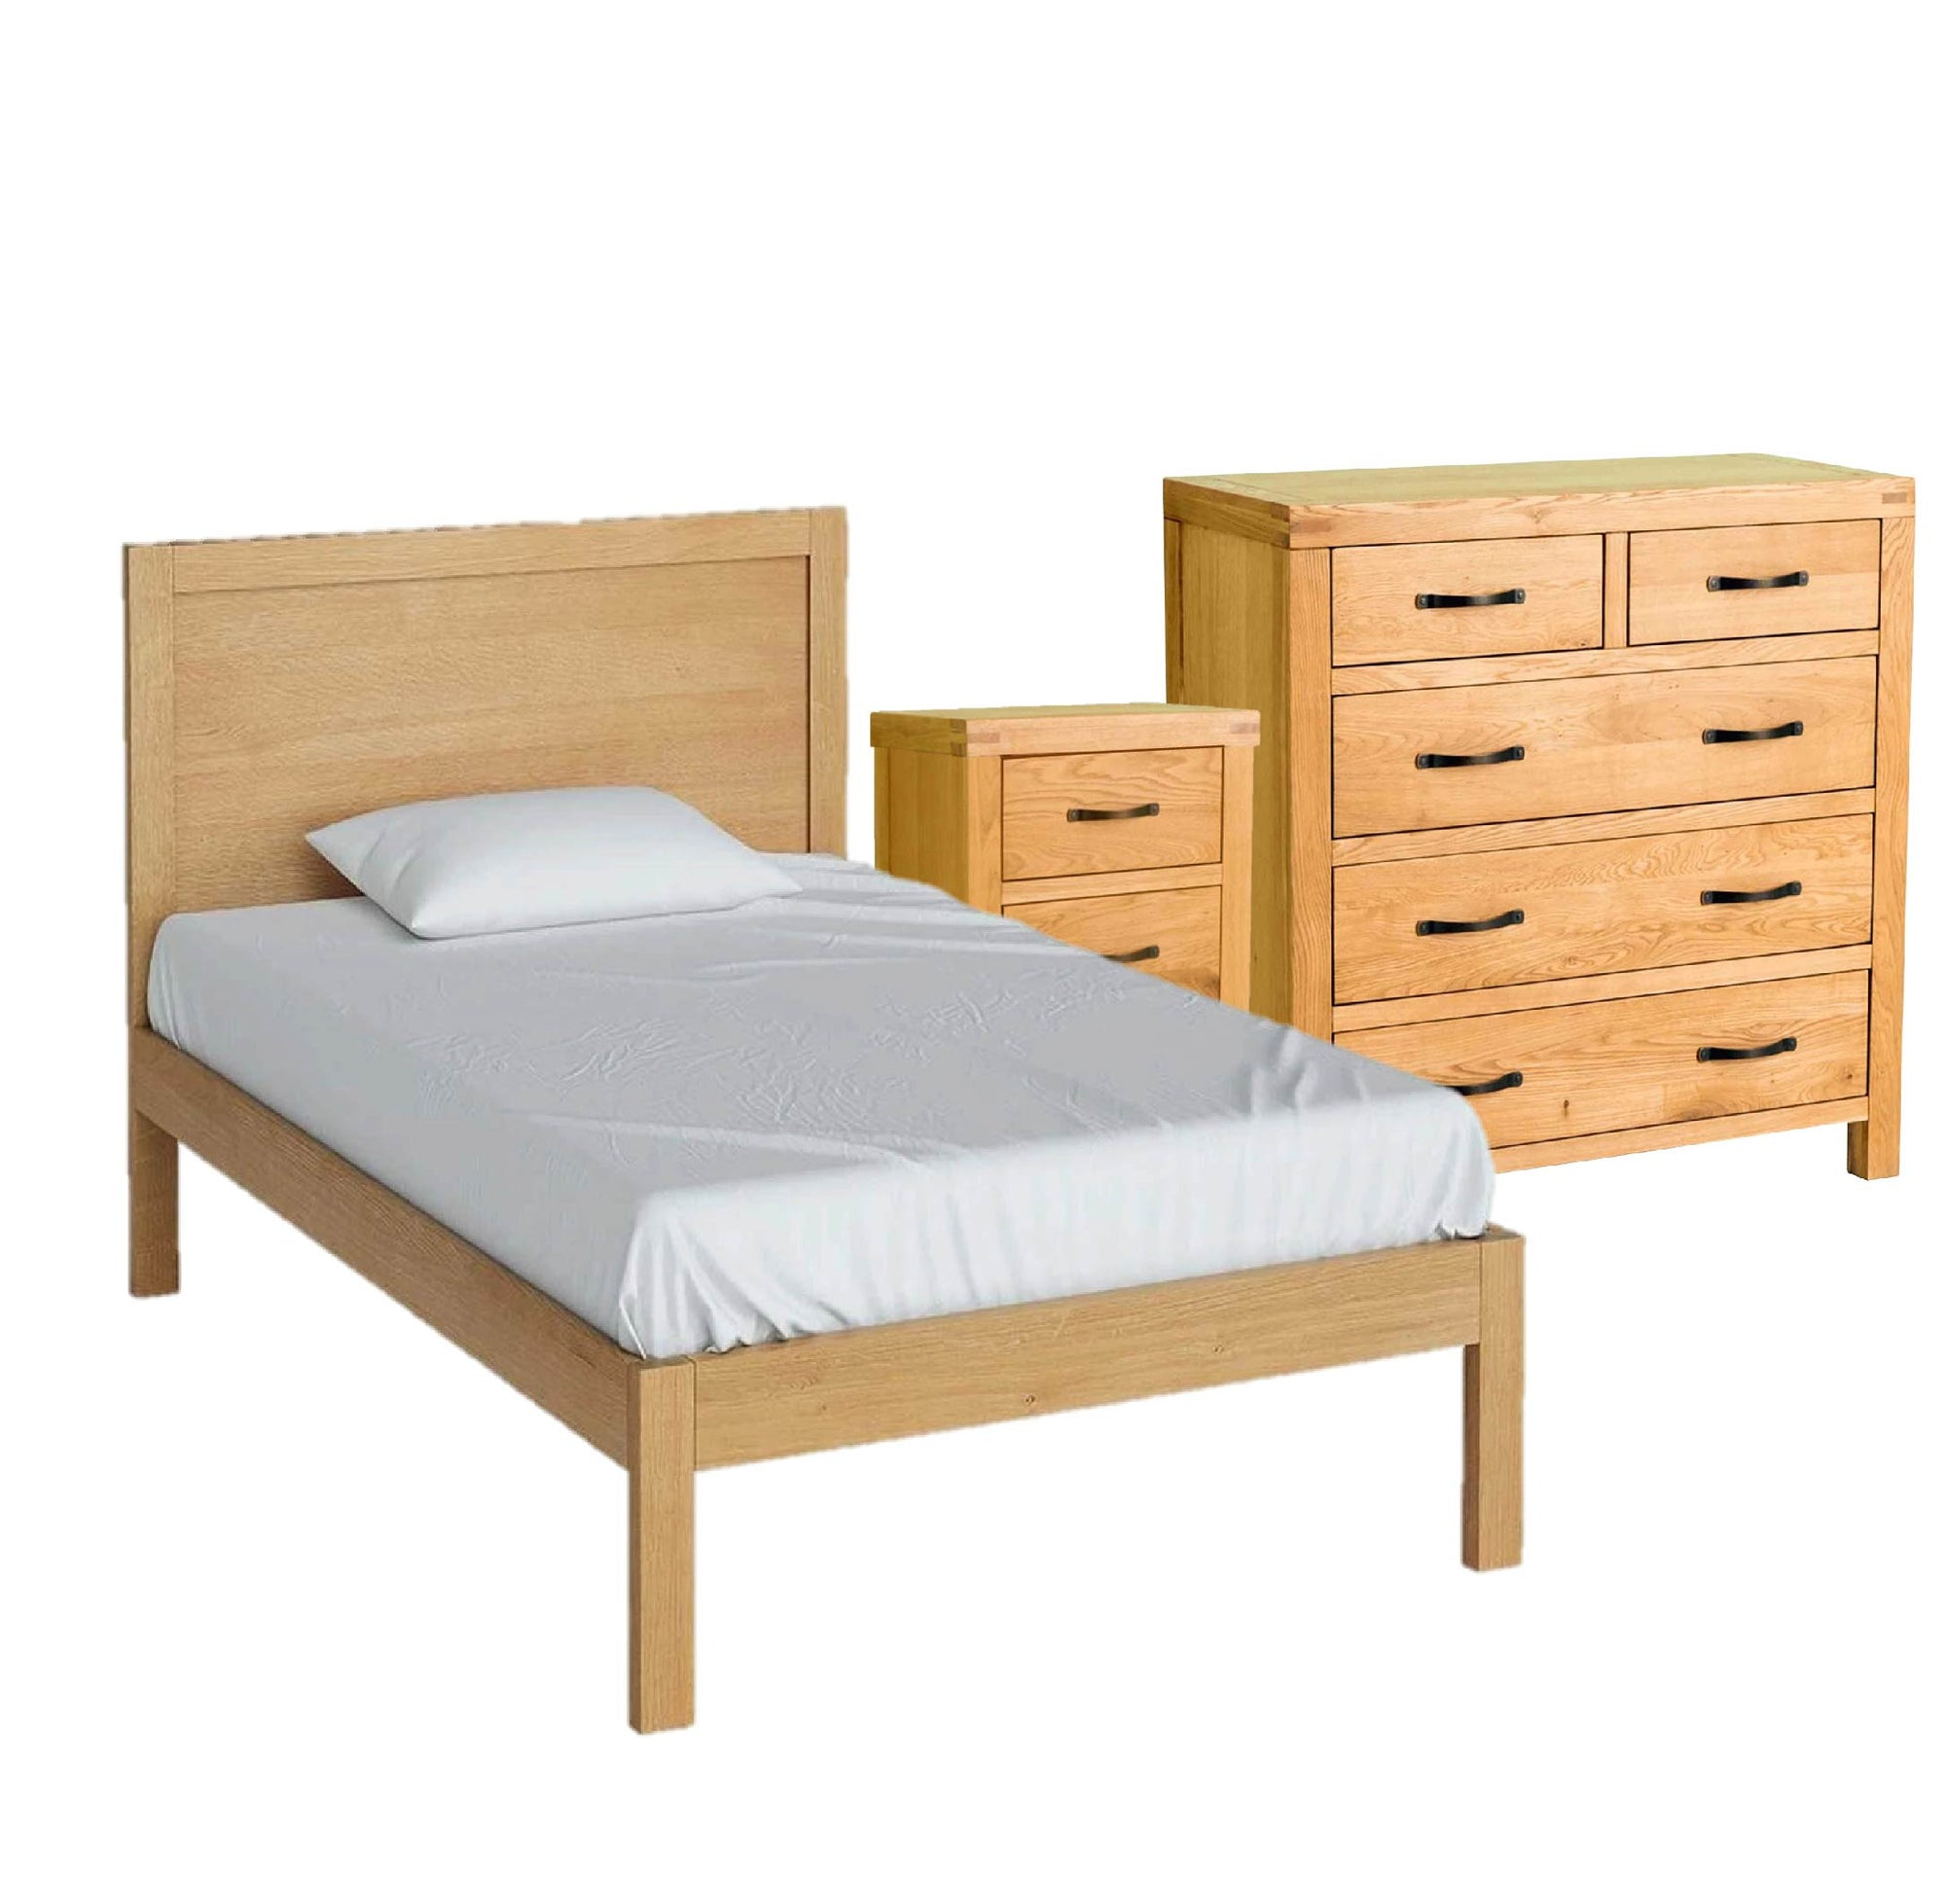 Abbey Waxed Oak 4' Small Double Bed Storage Set from Roseland Furniture